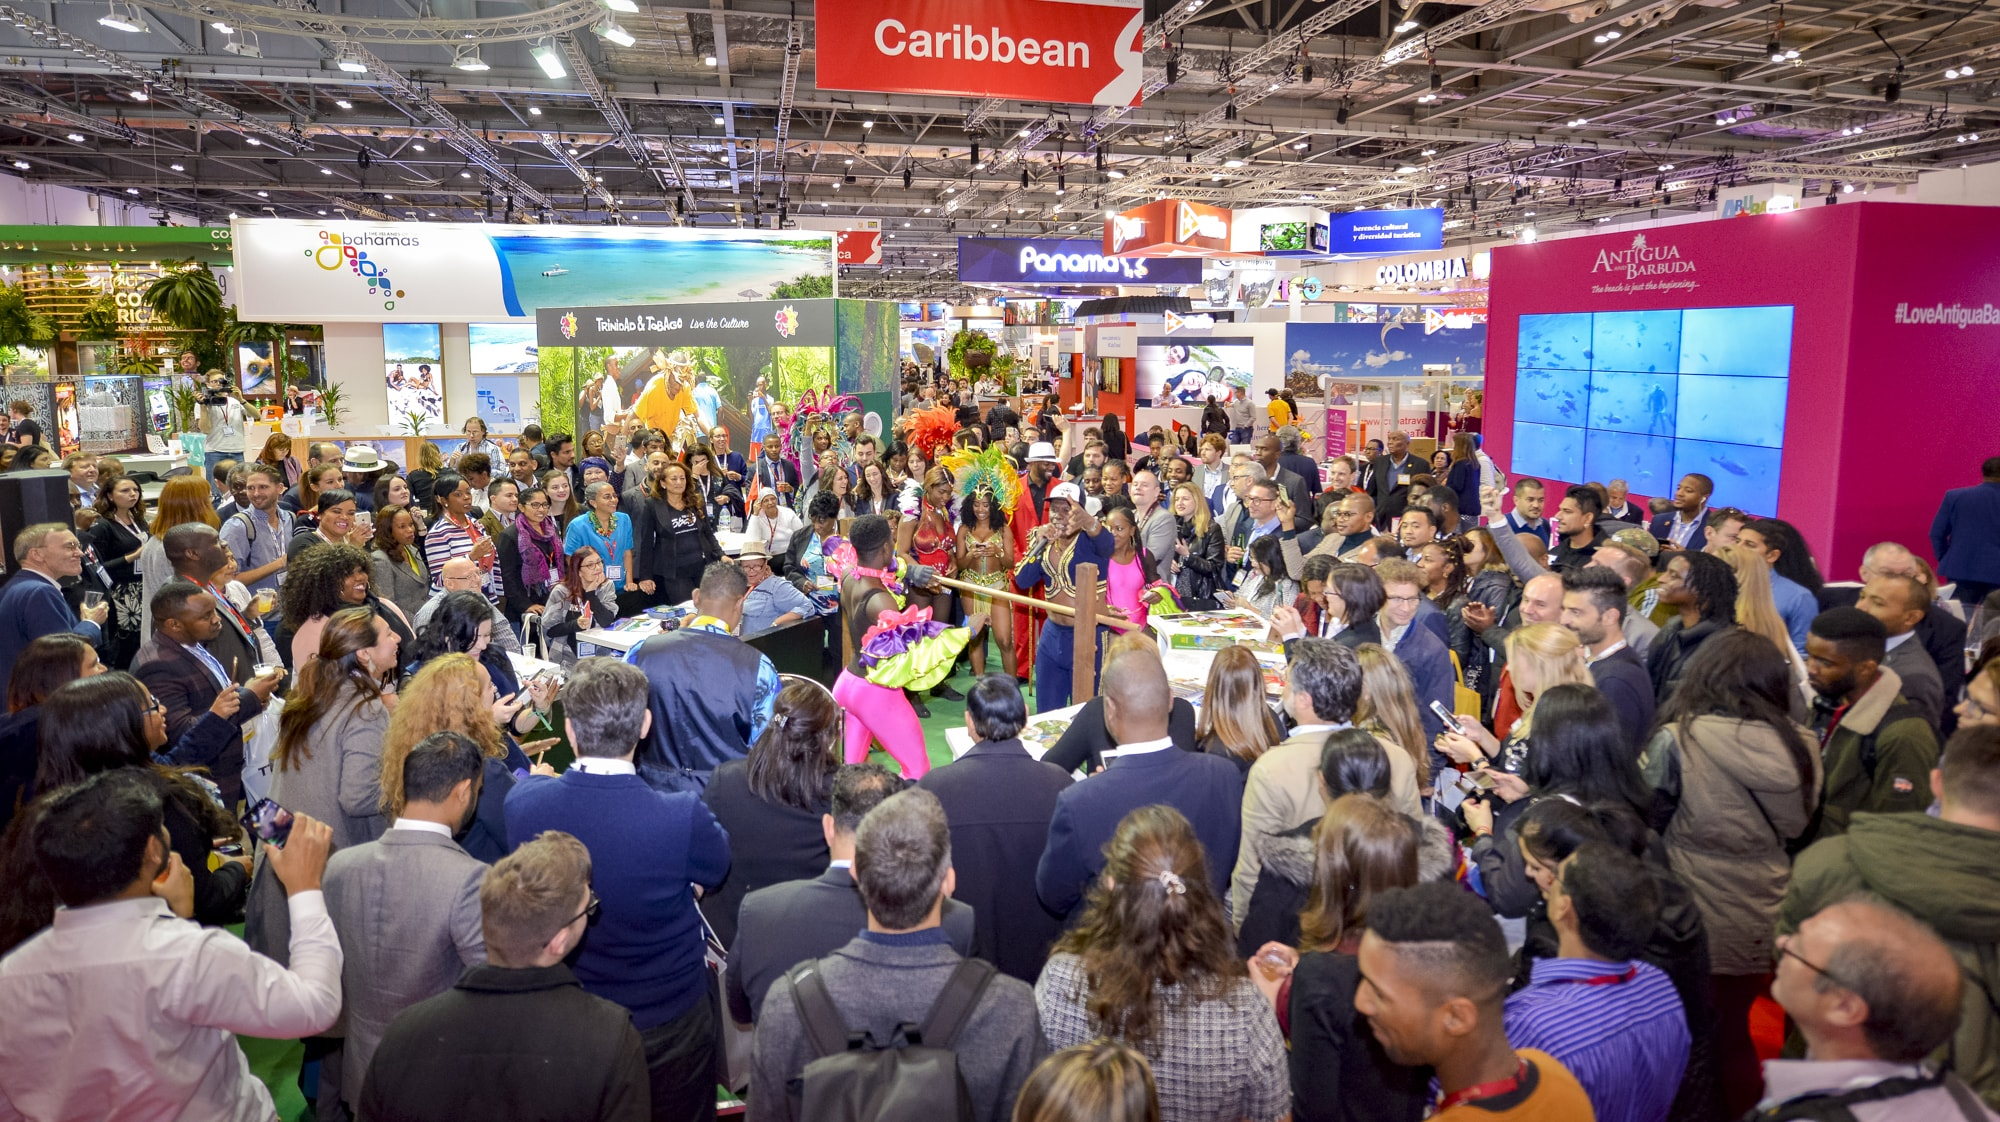 Crowd at World Travel Market